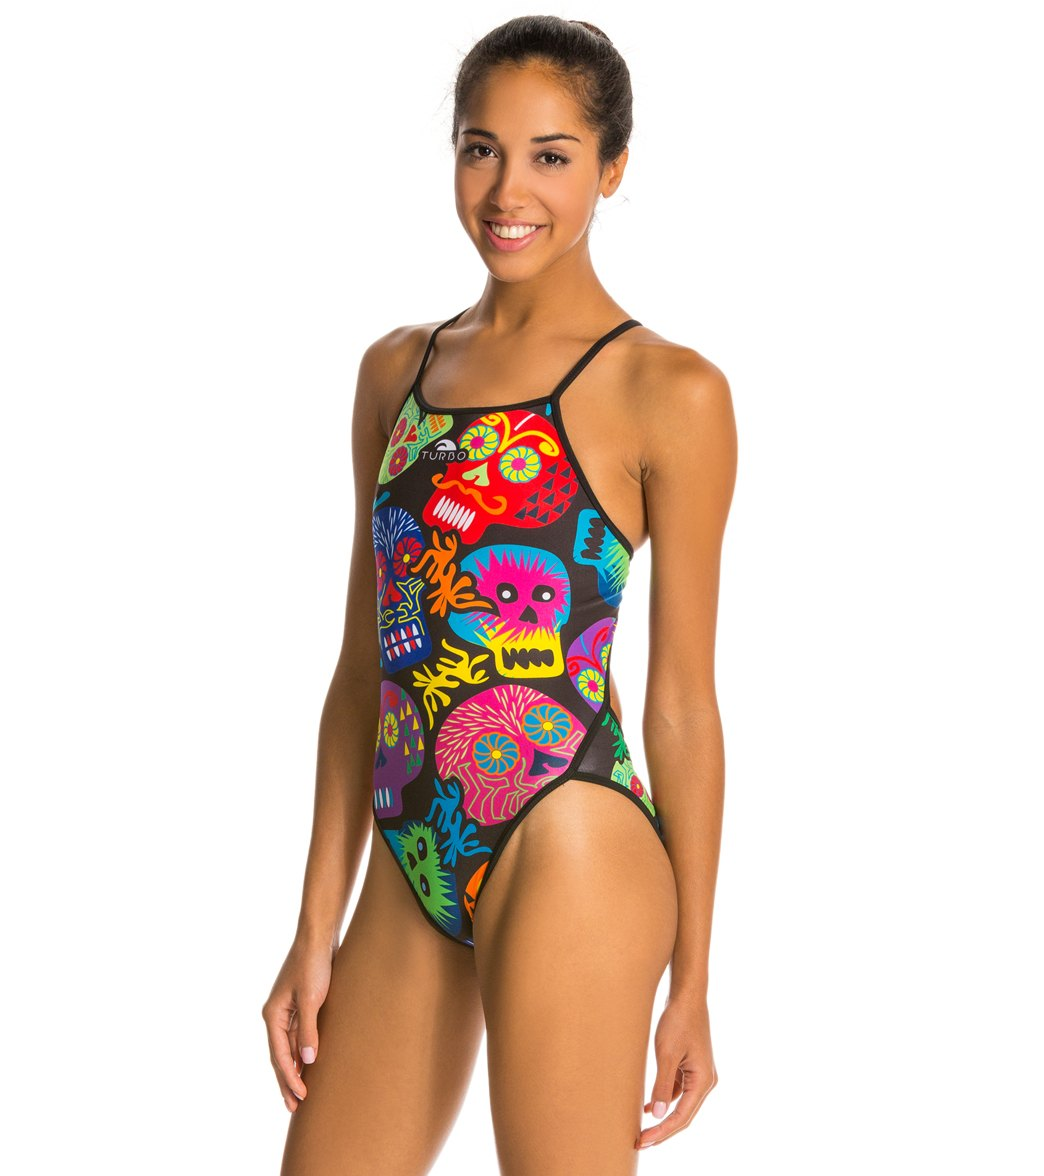 7bb2020bce Turbo Skulls Black One Piece Swimsuit at SwimOutlet.com - Free Shipping